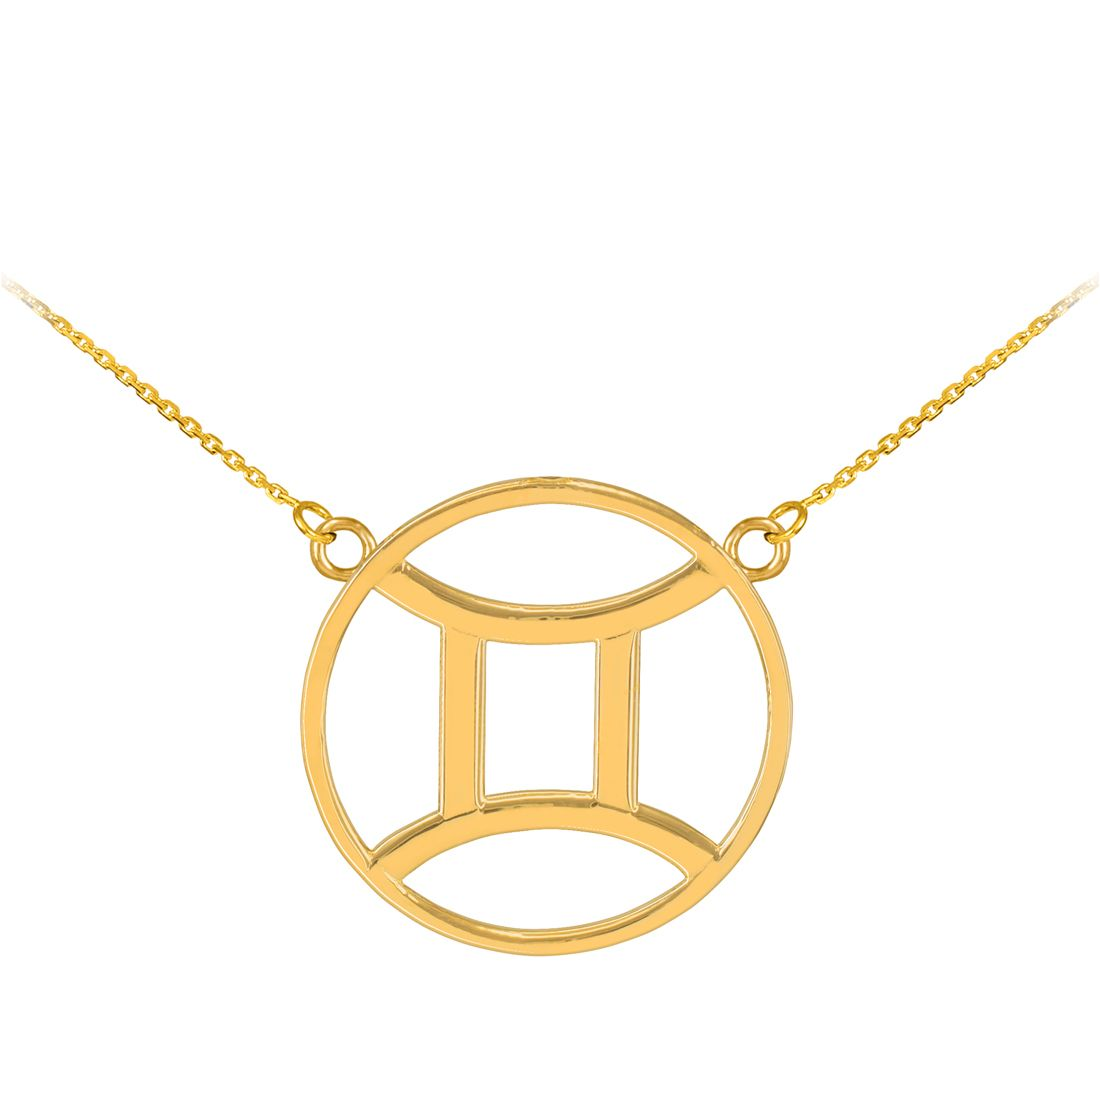 K Polished Gold Gemini Zodiac Sign Necklace Gemini zodiac